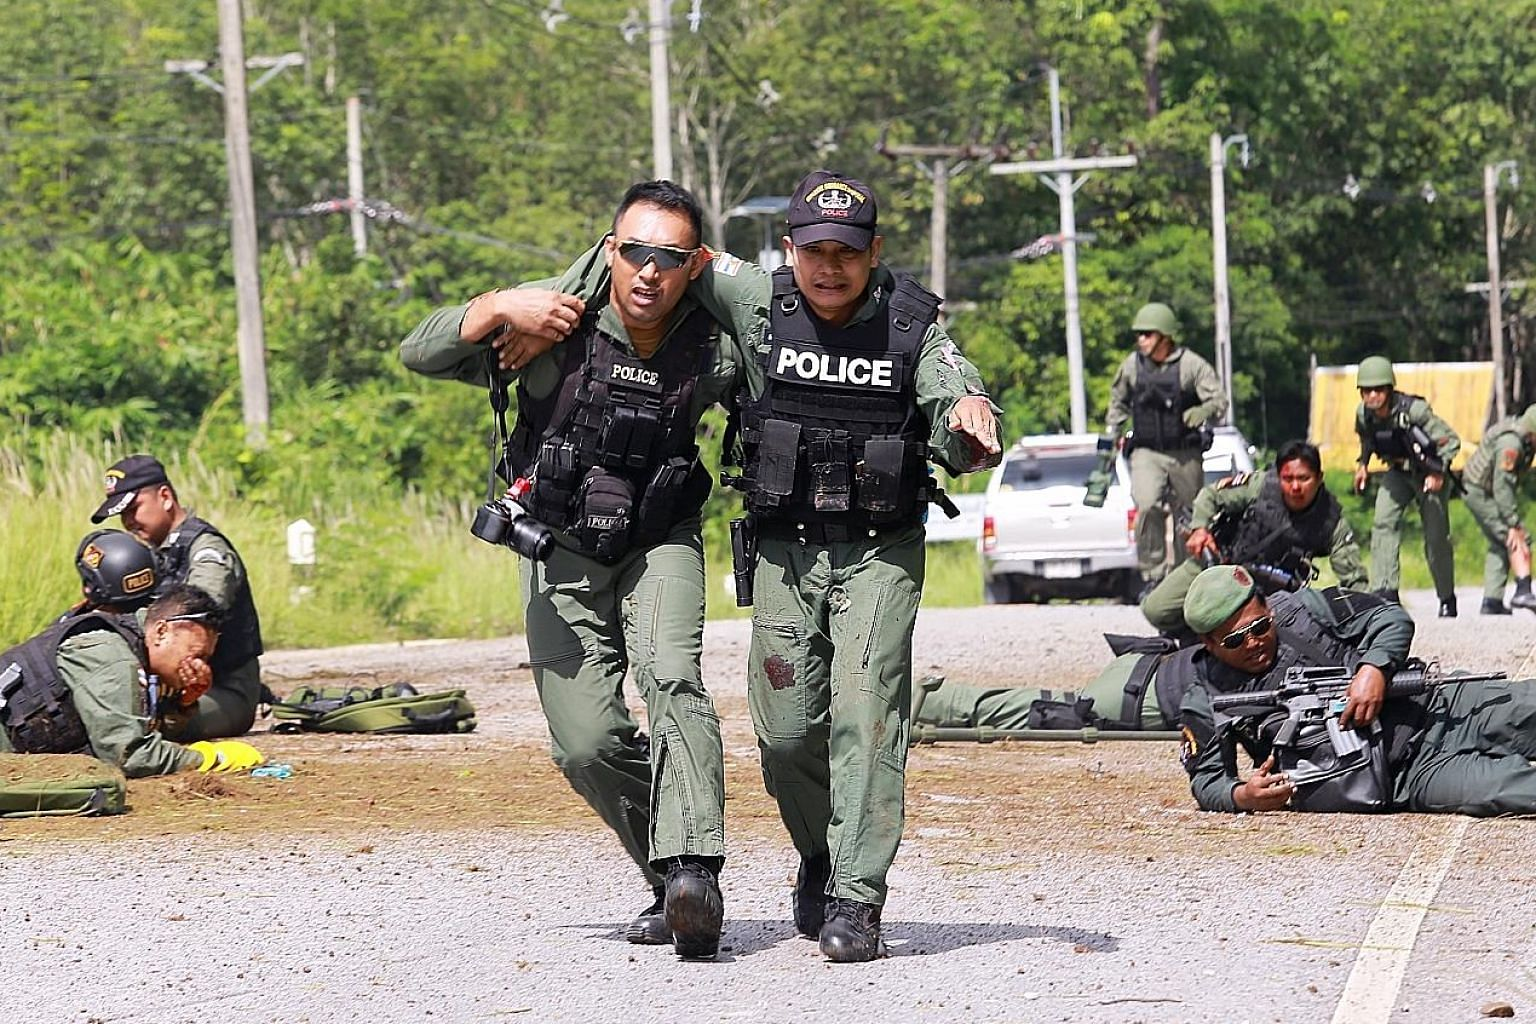 Police officers and bomb squad personnel helping injured comrades after a roadside attack in Yala province, southern Thailand, yesterday.